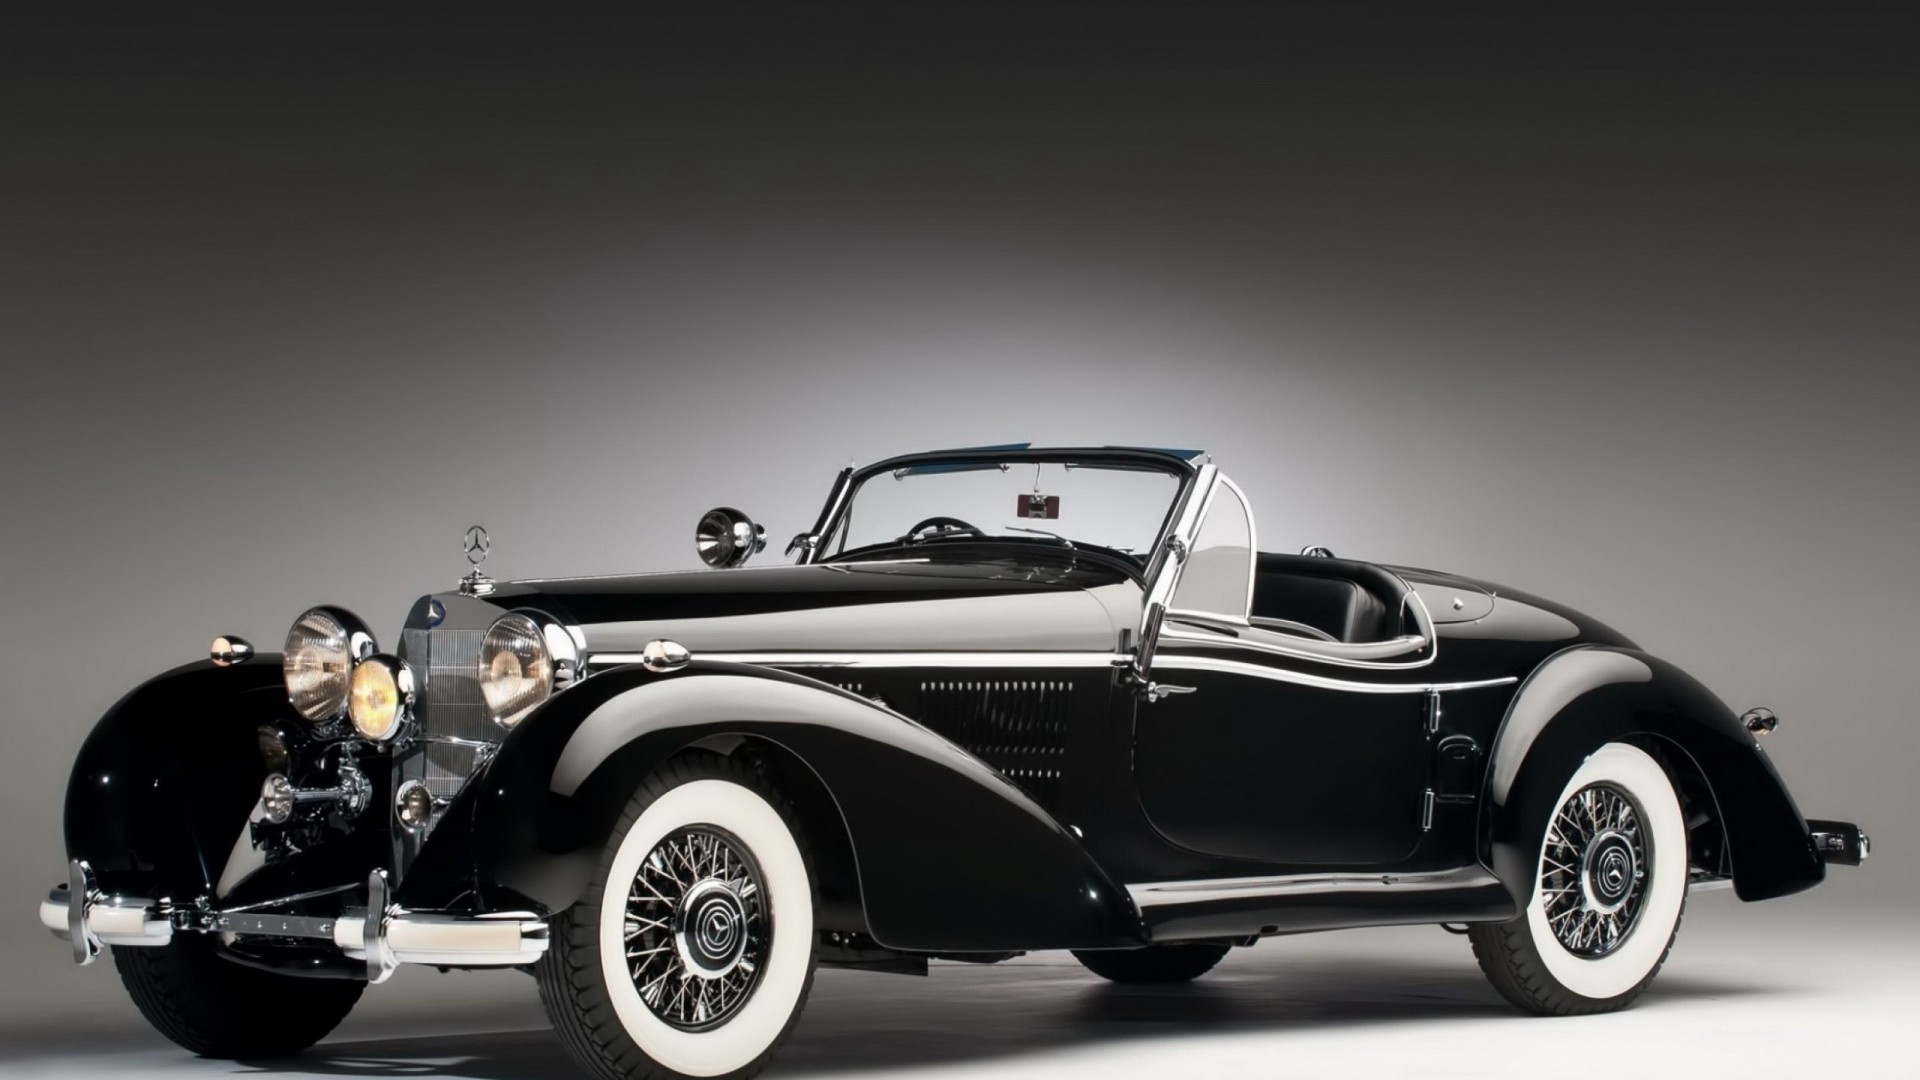 Old School Cars Hd Wallpapers 1080p